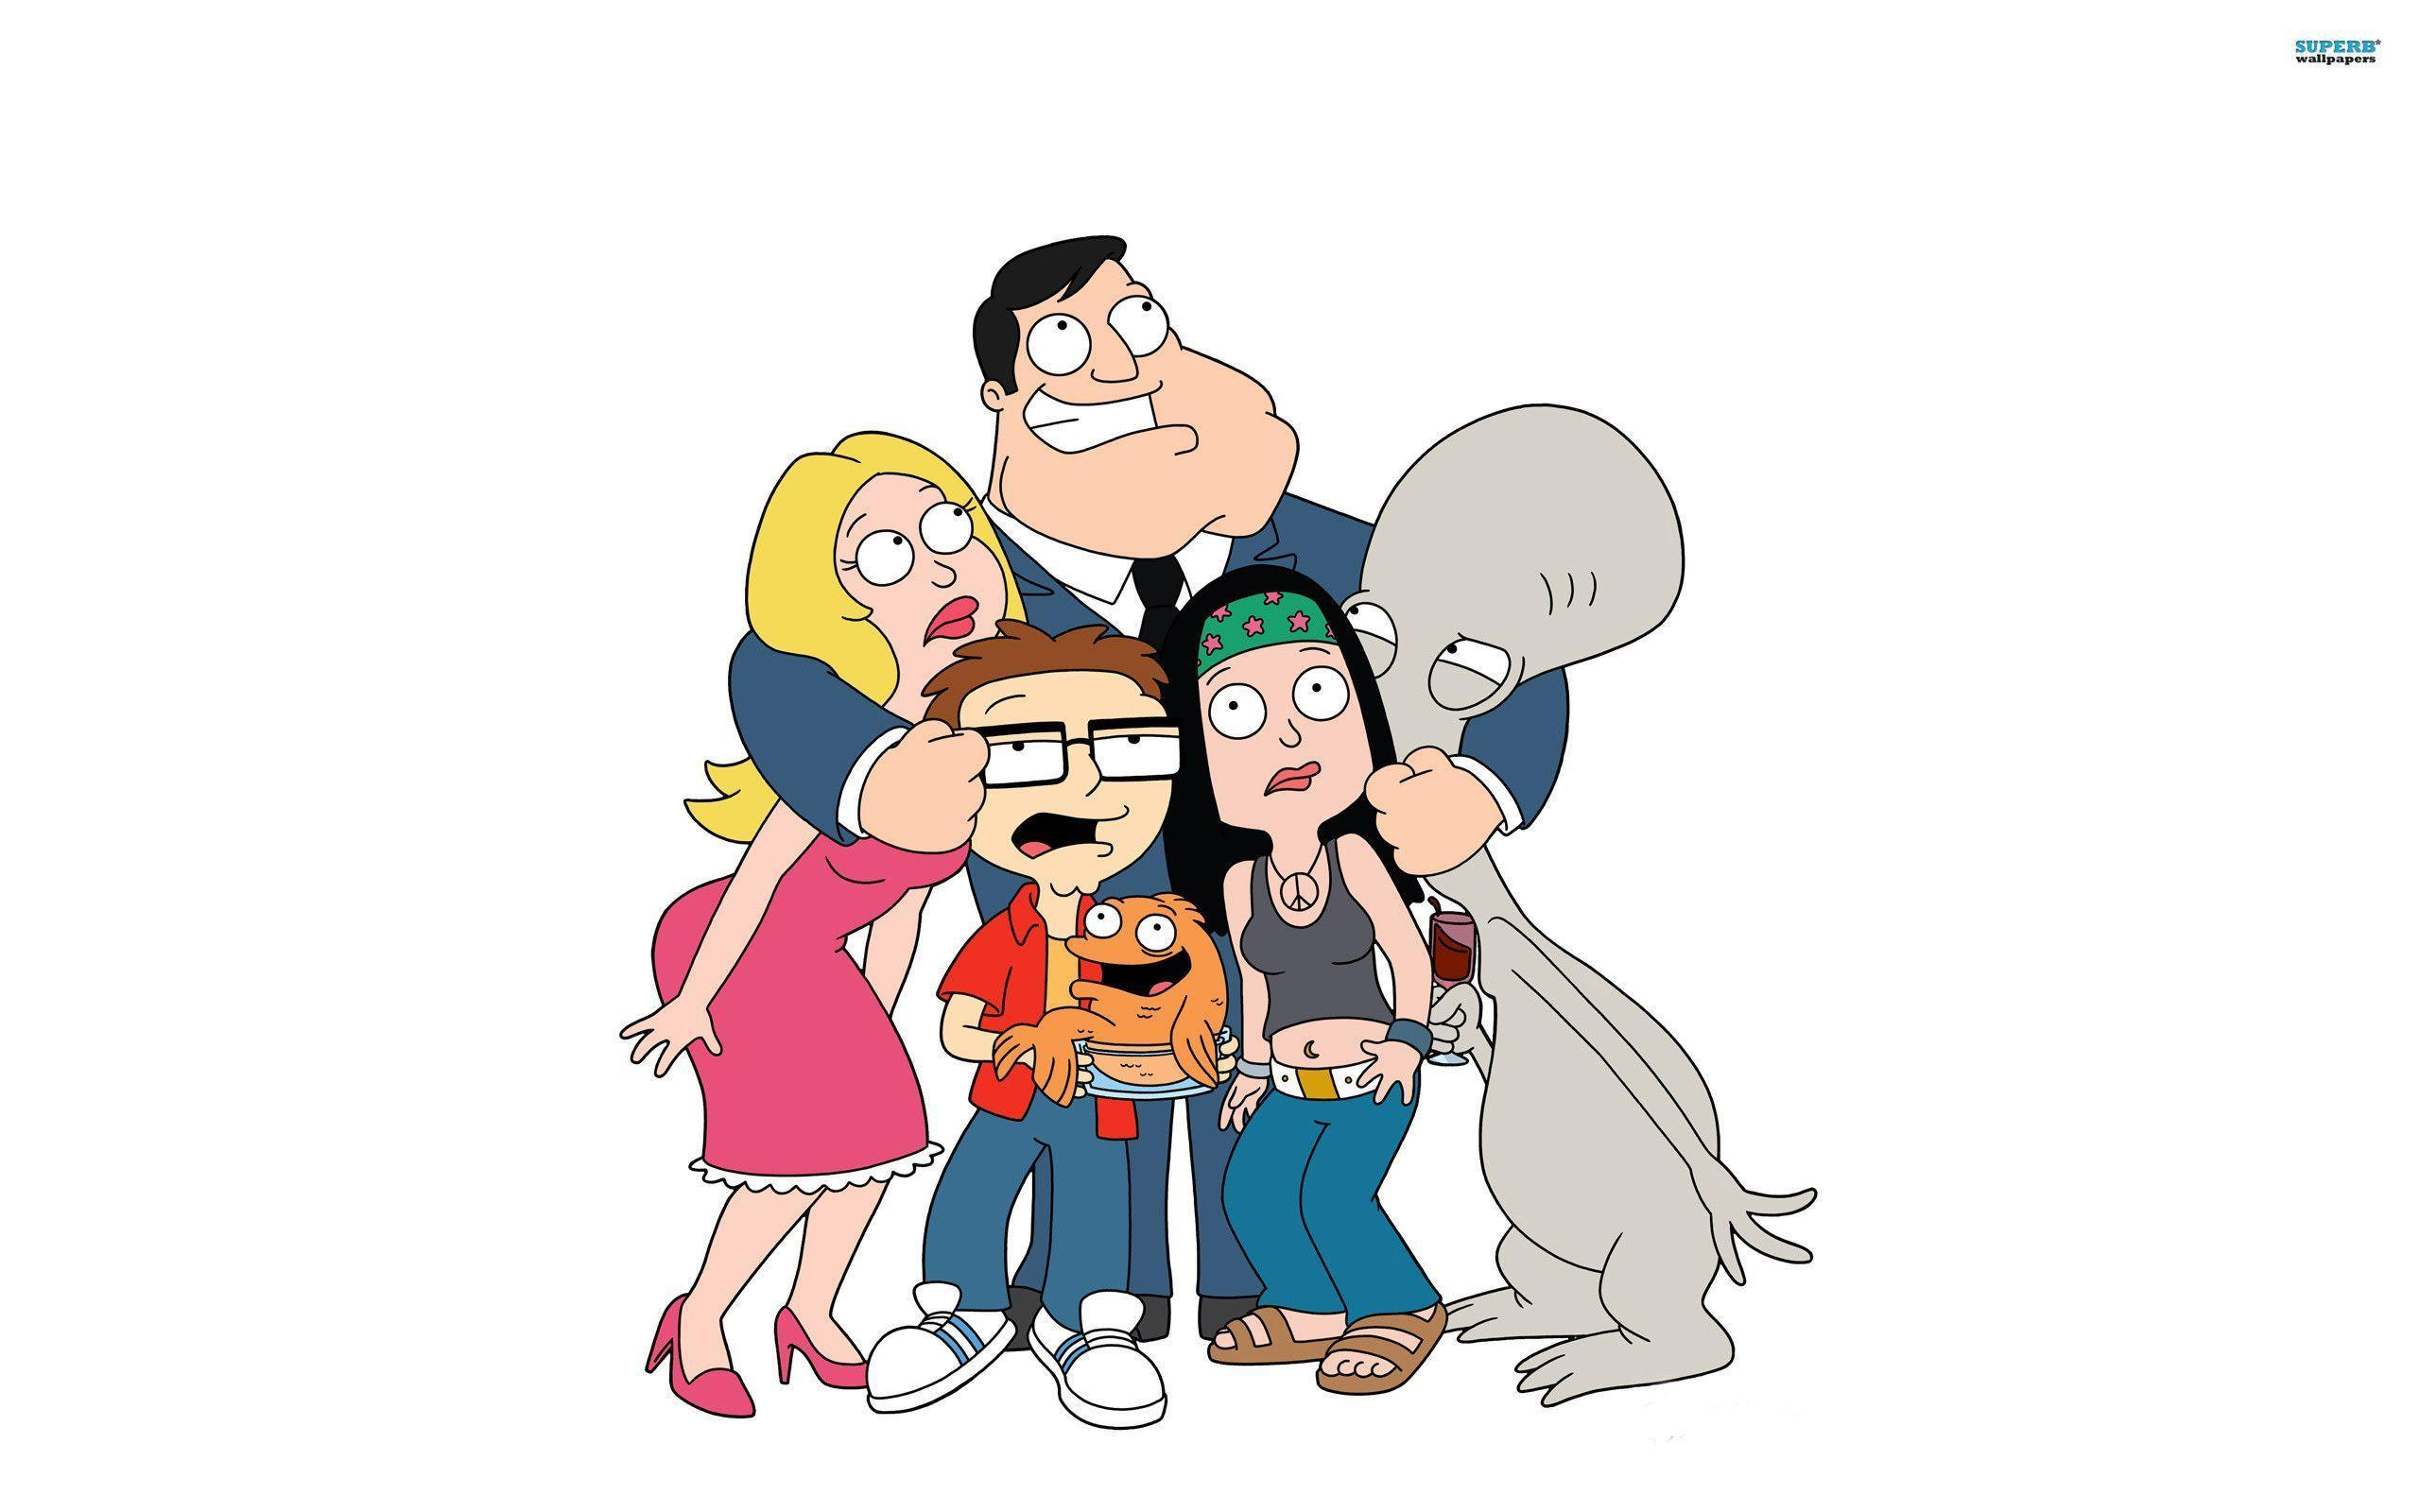 american dad wallpapers - photo #13